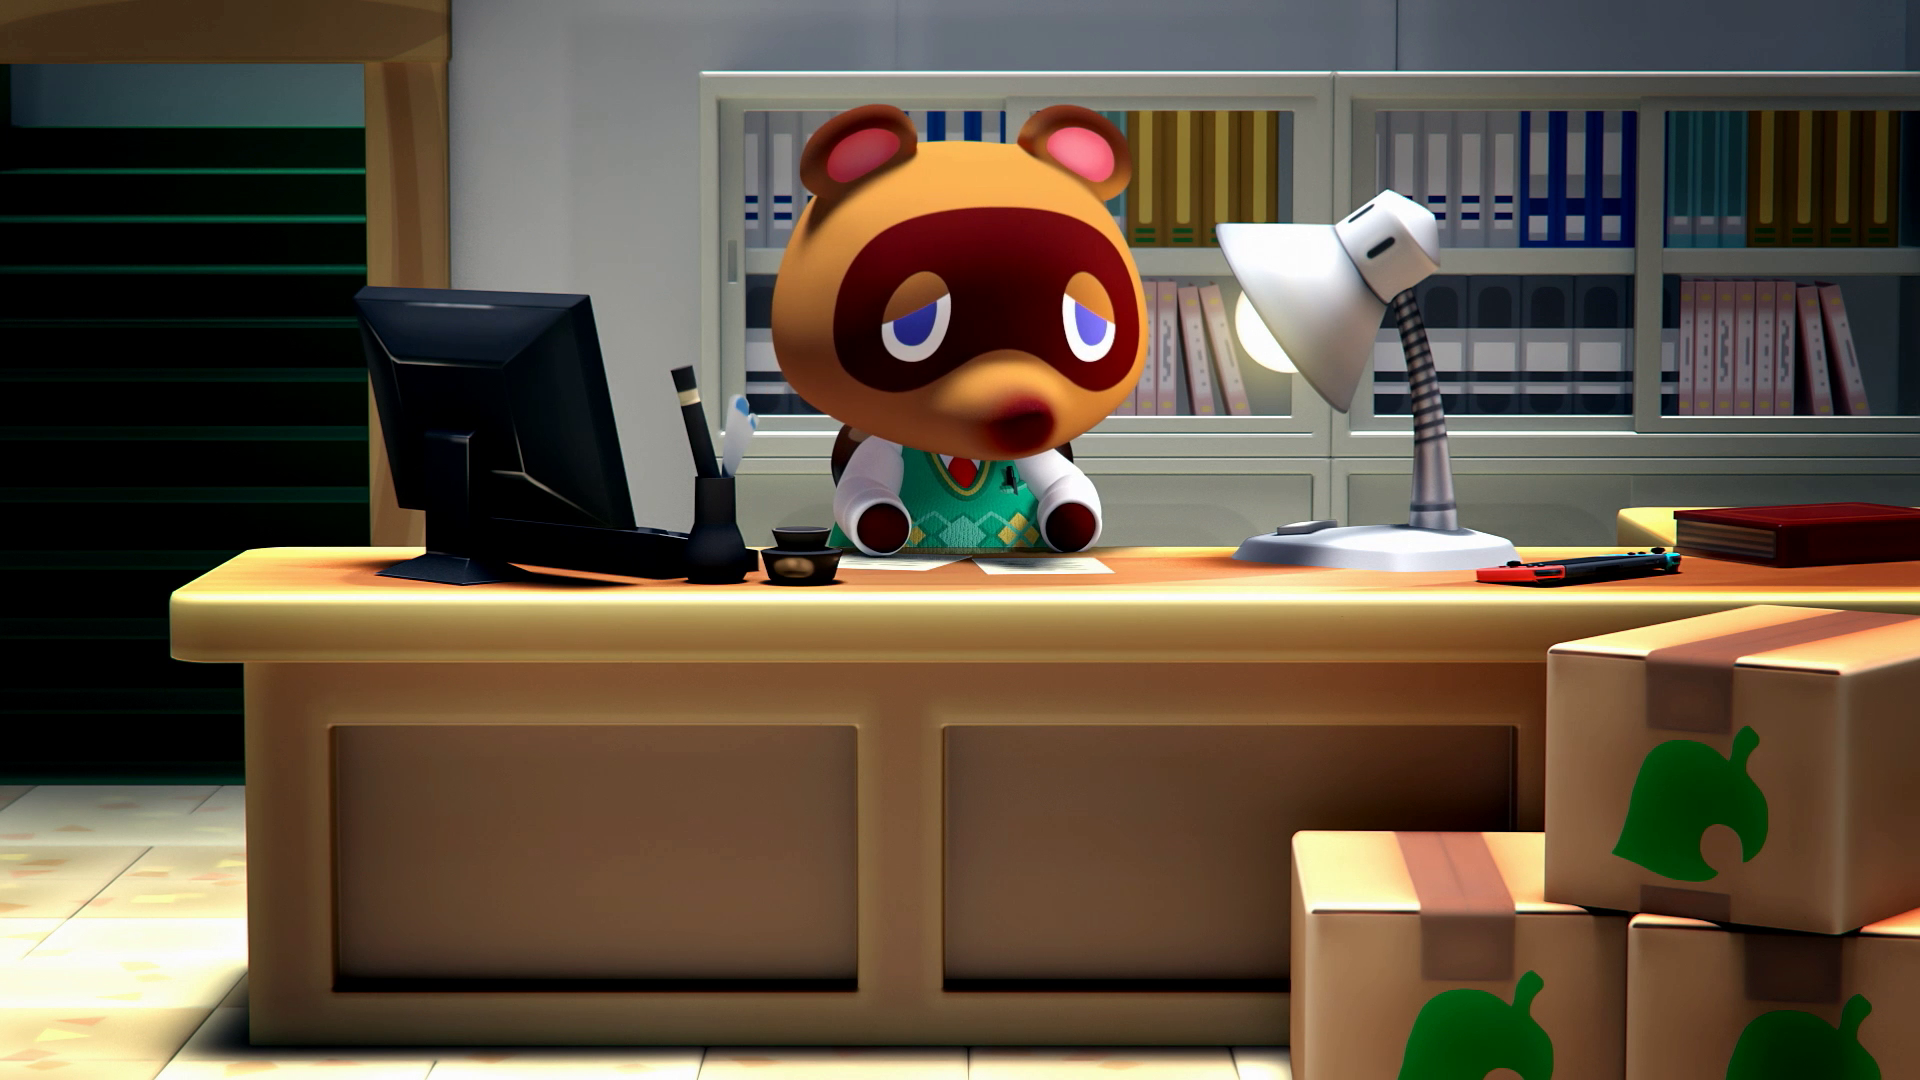 Nintendo says Animal Crossing fans have got Tom Nook all wrong